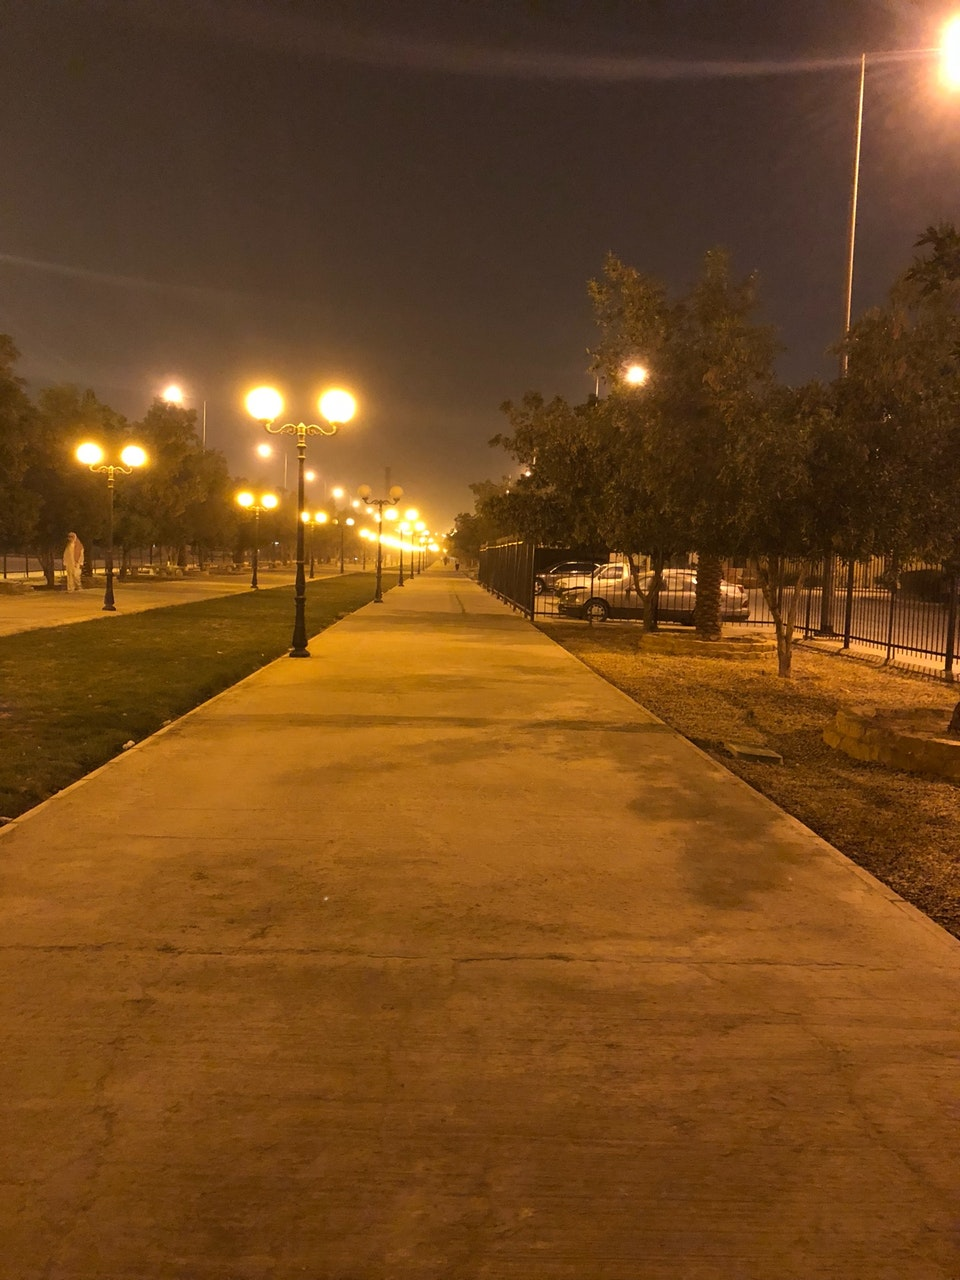 AL Nada District Park